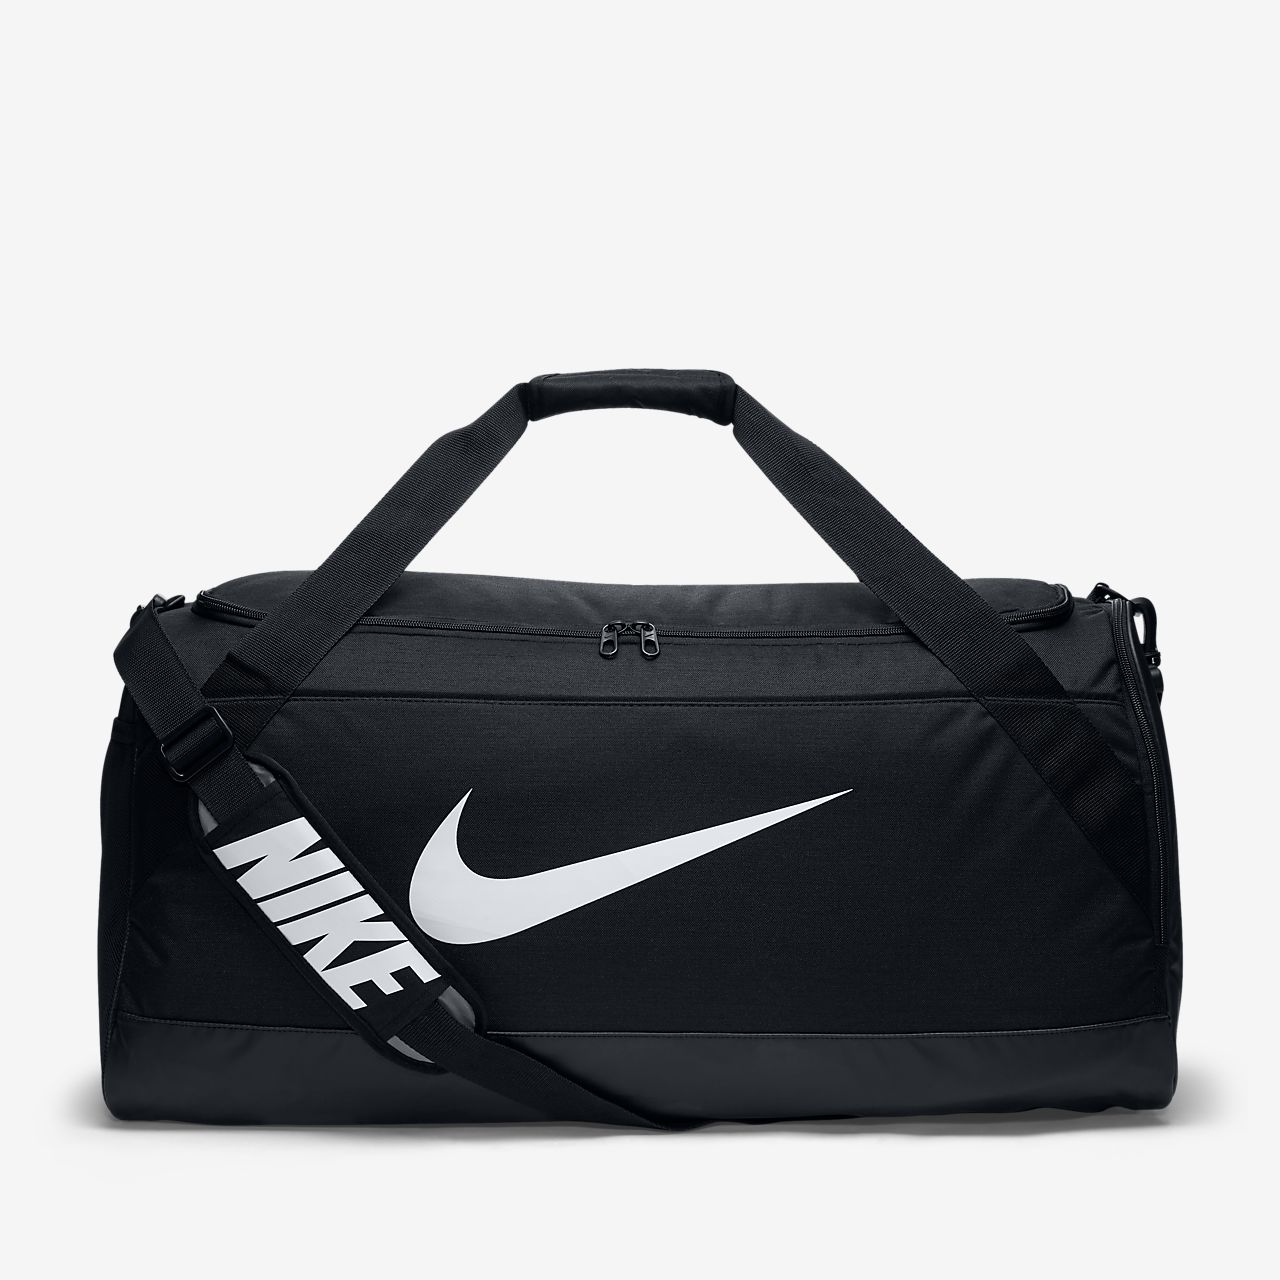 9739bb15da0736 Nike Brasilia Training Duffel Bag (Large). Nike.com AU